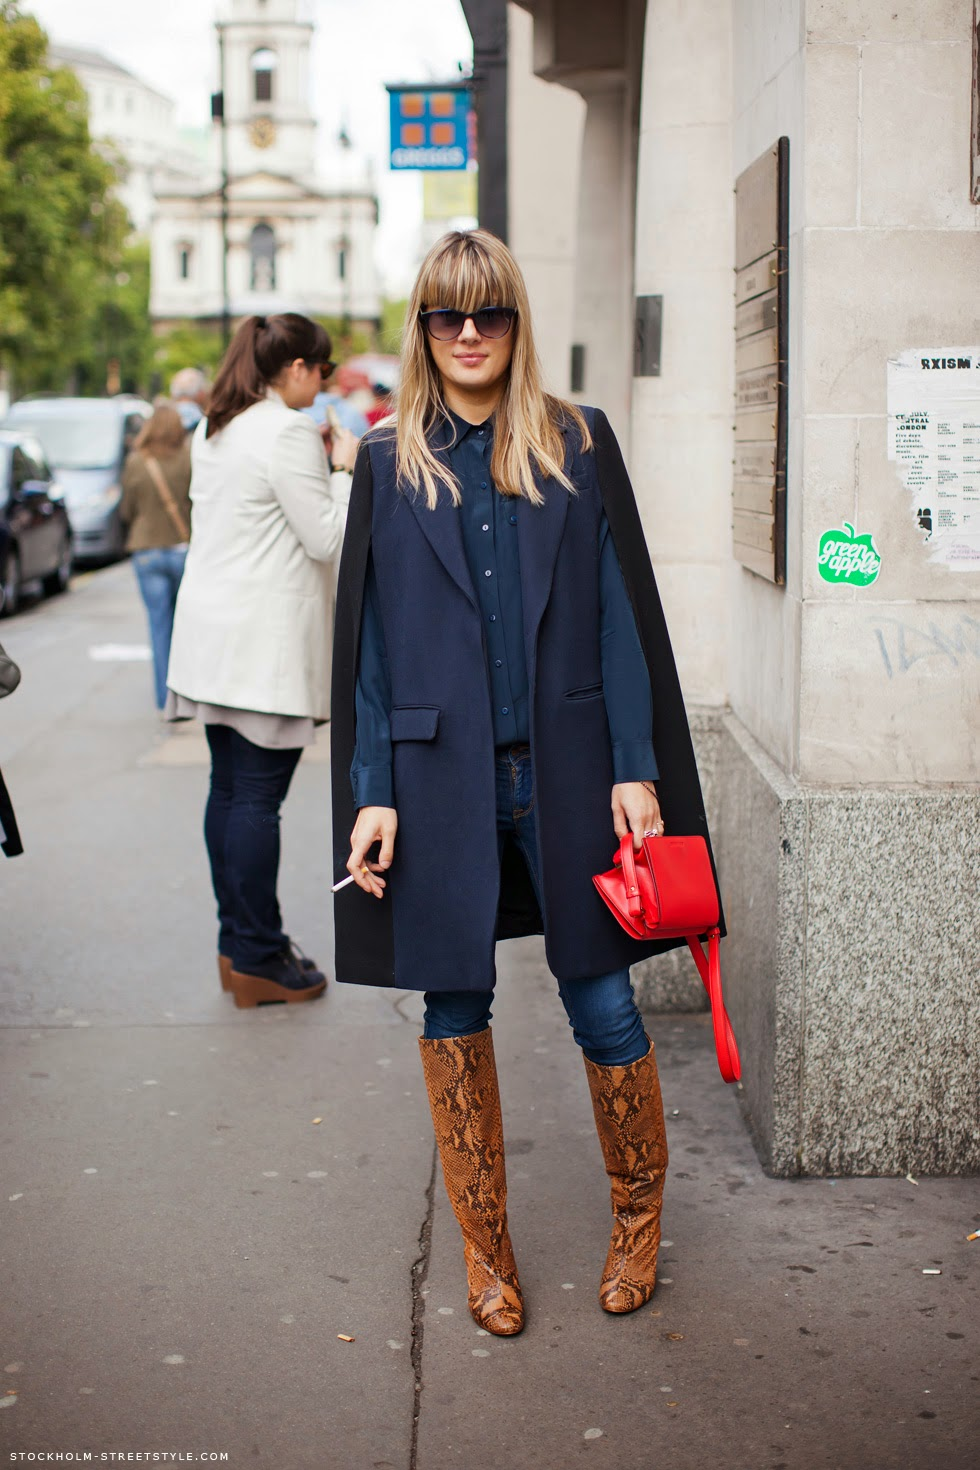 blue-cape-brown-knee-boots-red-bag-outfit